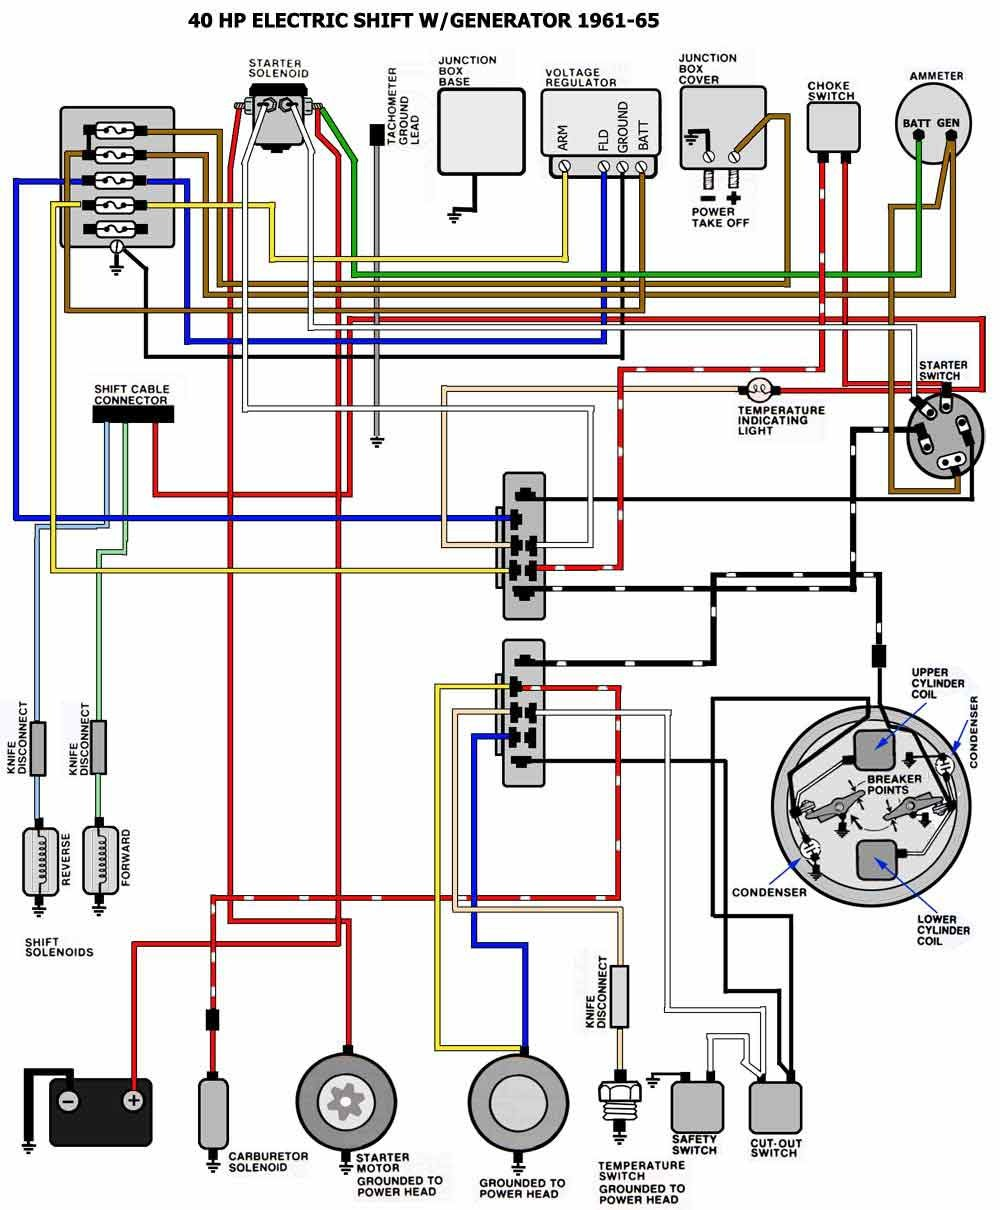 40 Hp Mercury Solenoid Wiring Custom Wiring Diagram \u2022 Mercury 45 Jet Wiring  Diagram Mercury 40 Hp Wiring Diagram